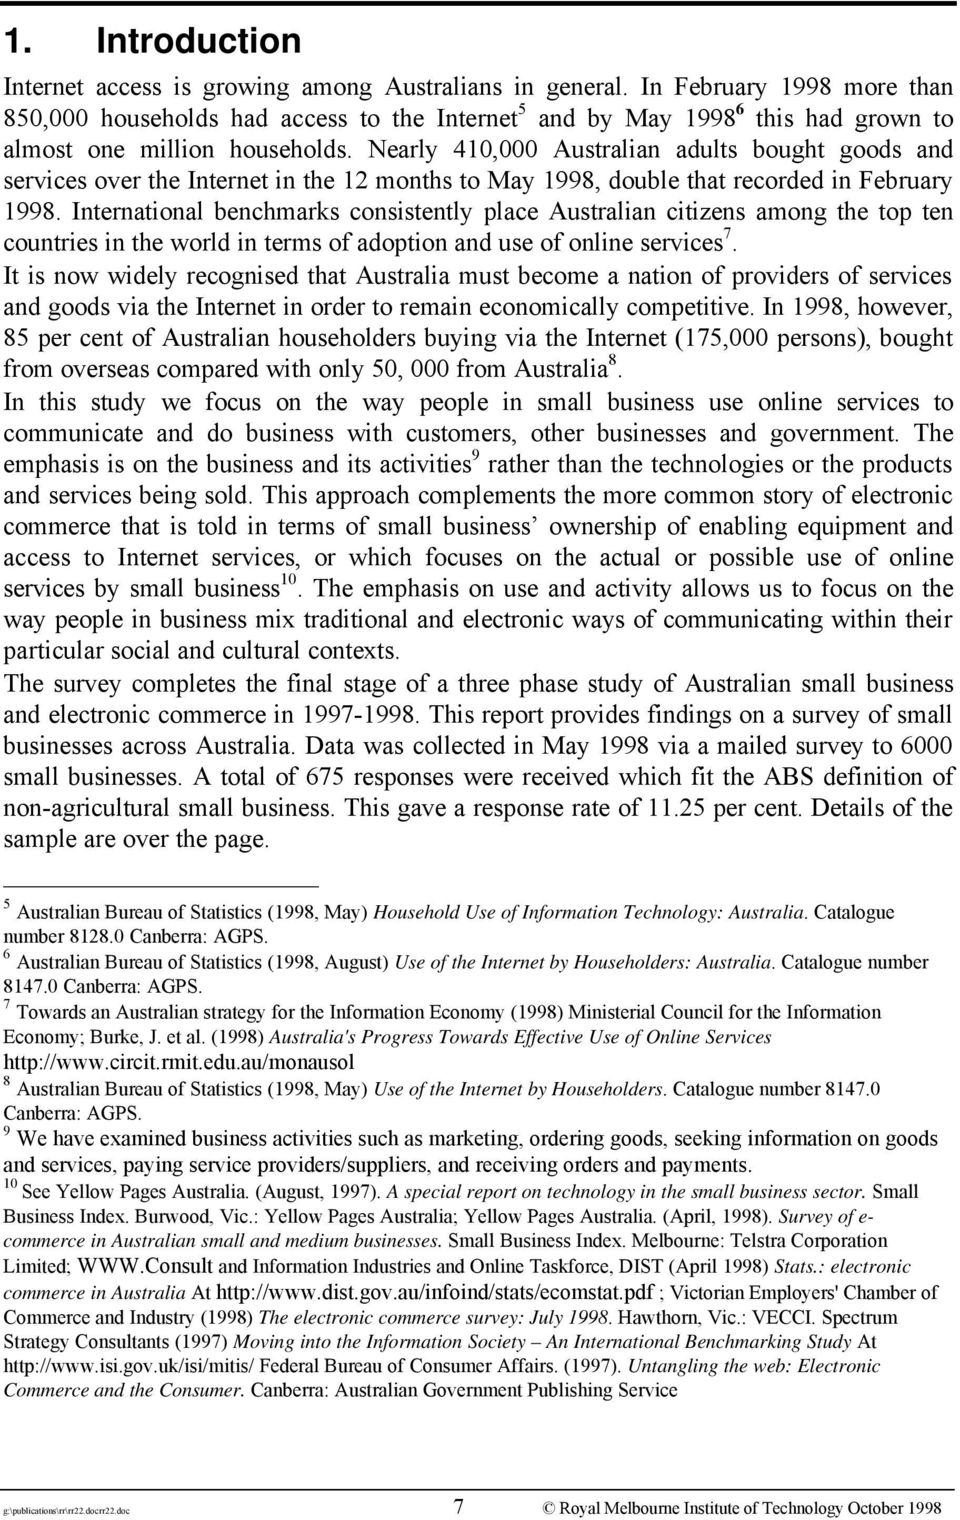 Nearly 410,000 Australian adults bought goods and services over the Internet in the 12 months to May 1998, double that recorded in February 1998.